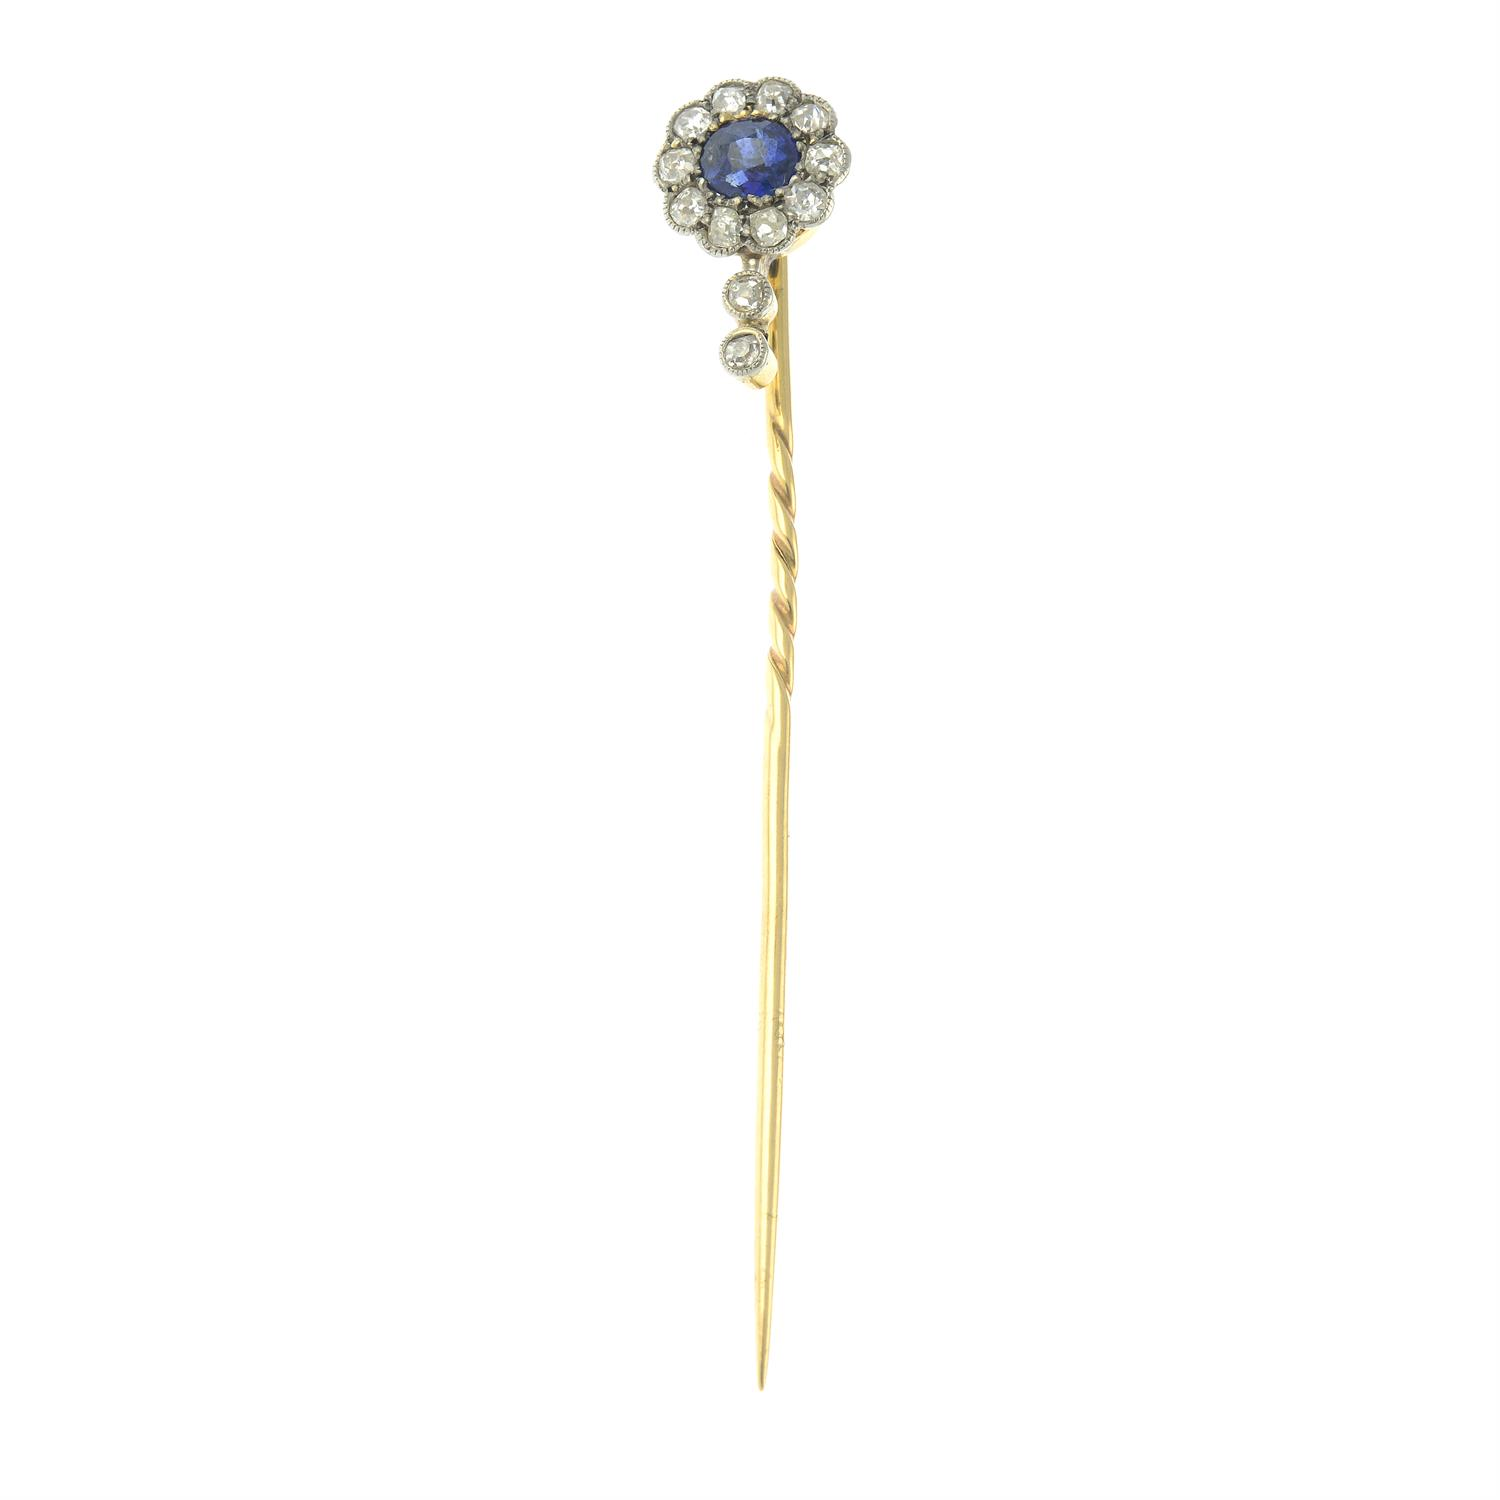 An early 20th century 12ct gold and platinum, sapphire and old-cut diamond cluster stickpin. - Image 3 of 5